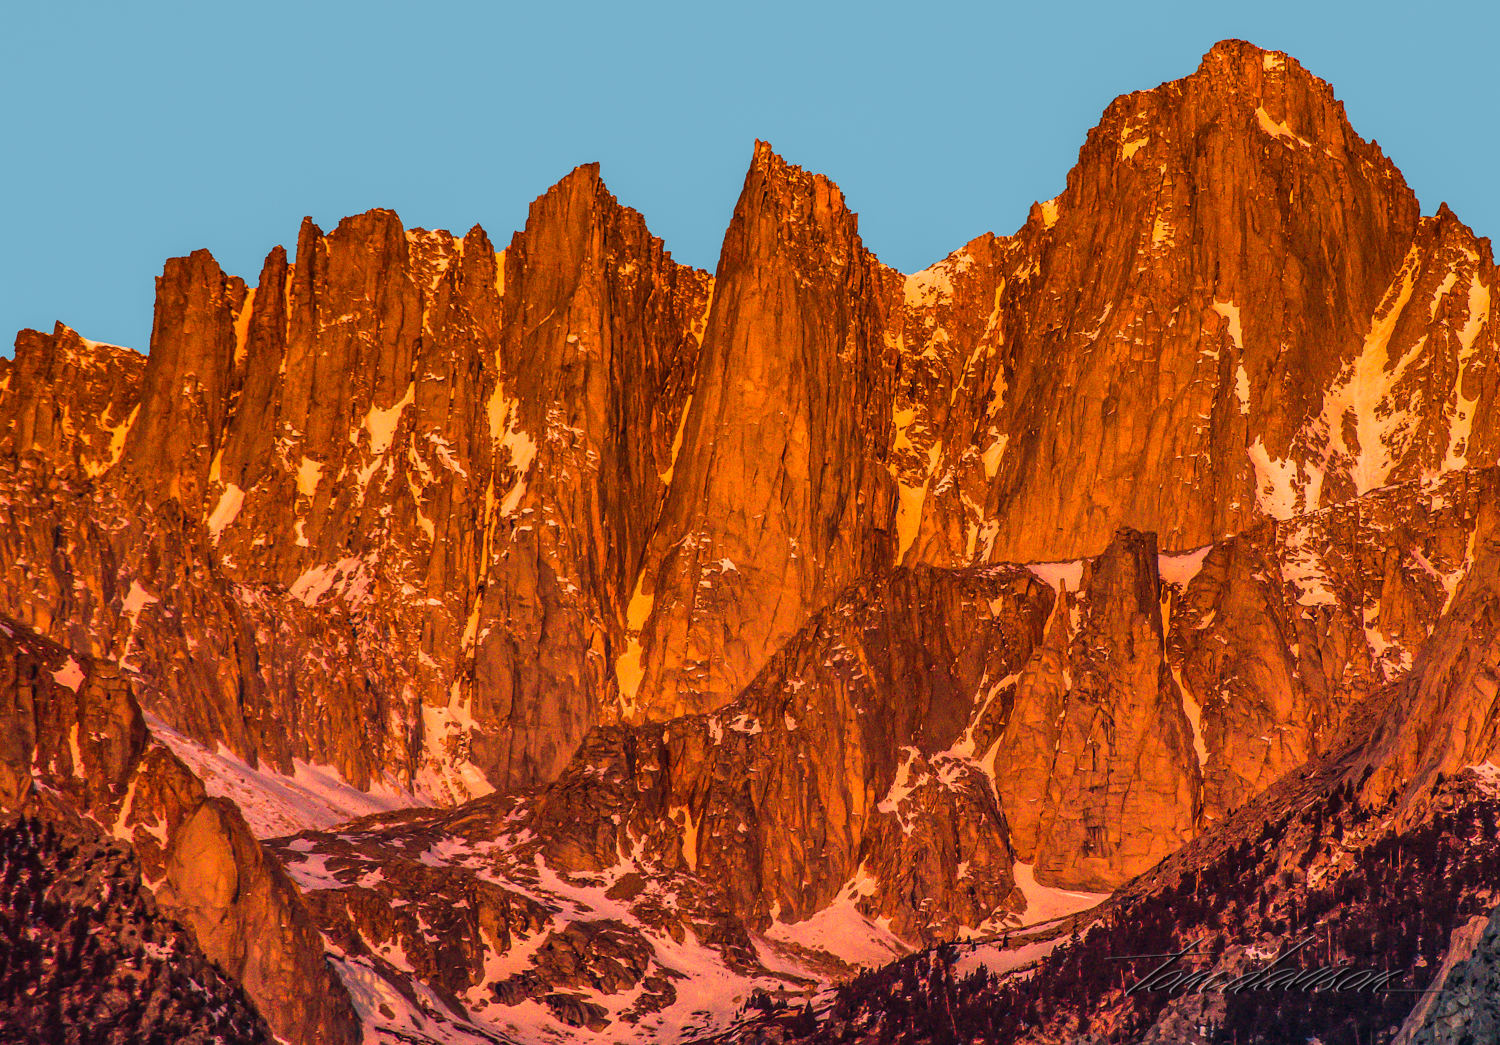 Top of Mt. Whitney at sunrise.